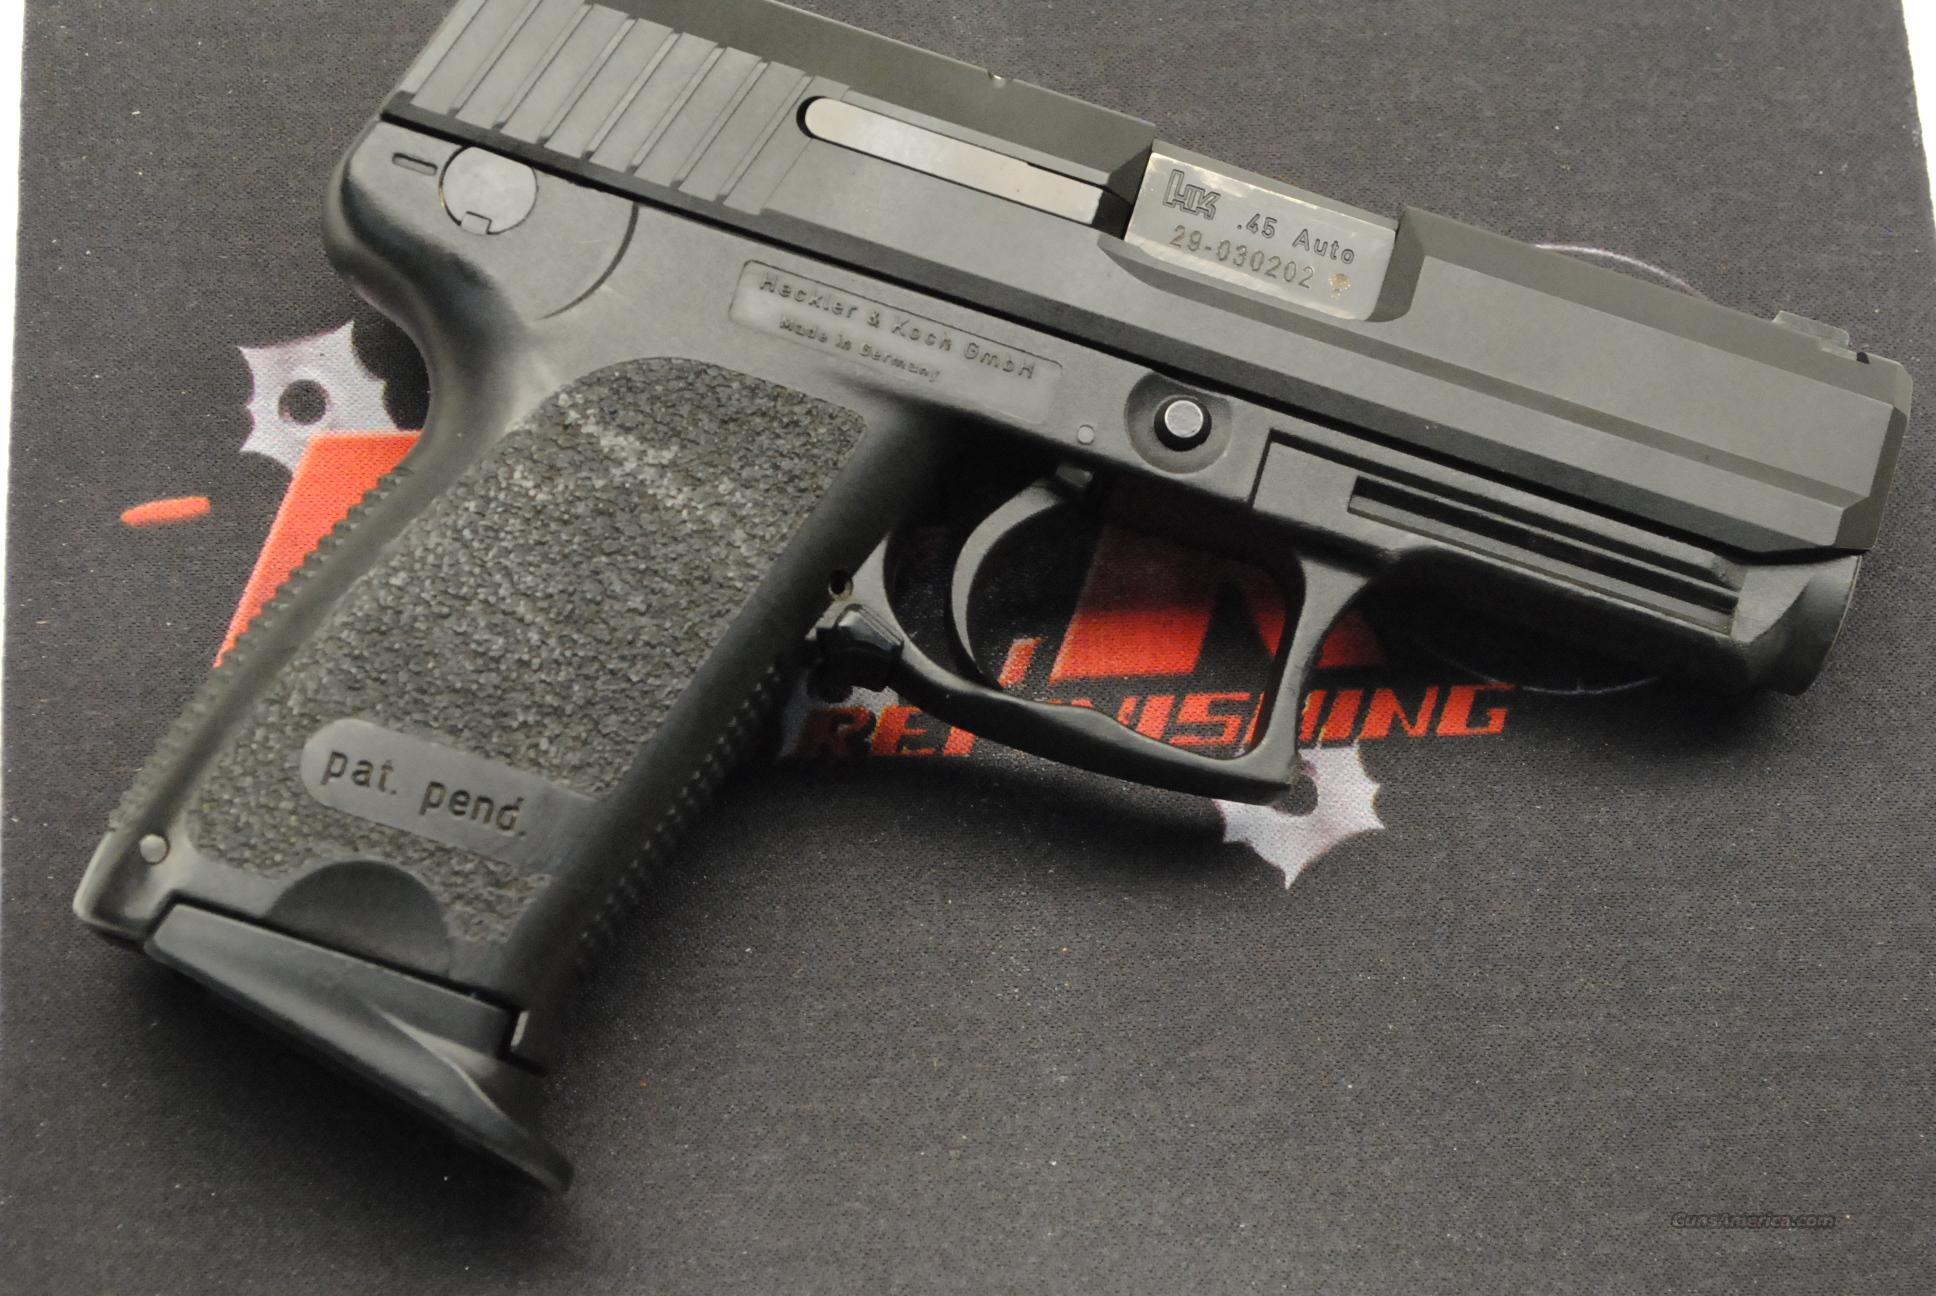 HK USP Compact with Night Sights, 45 ACP  Guns > Pistols > Heckler & Koch Pistols > Polymer Frame